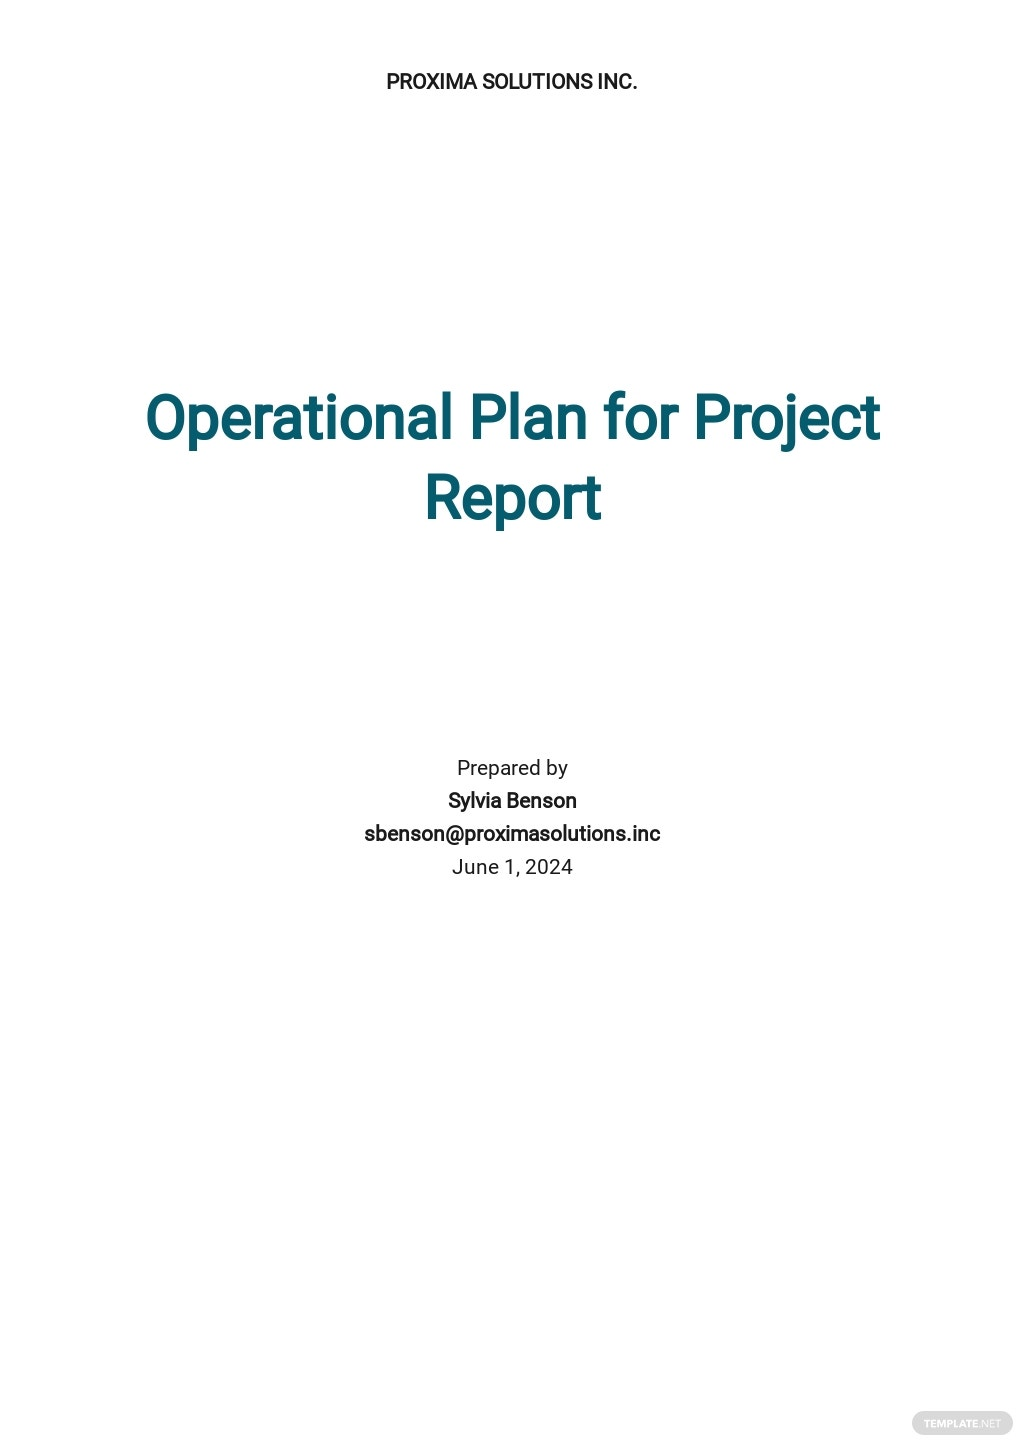 Operational Plan For Project report Template